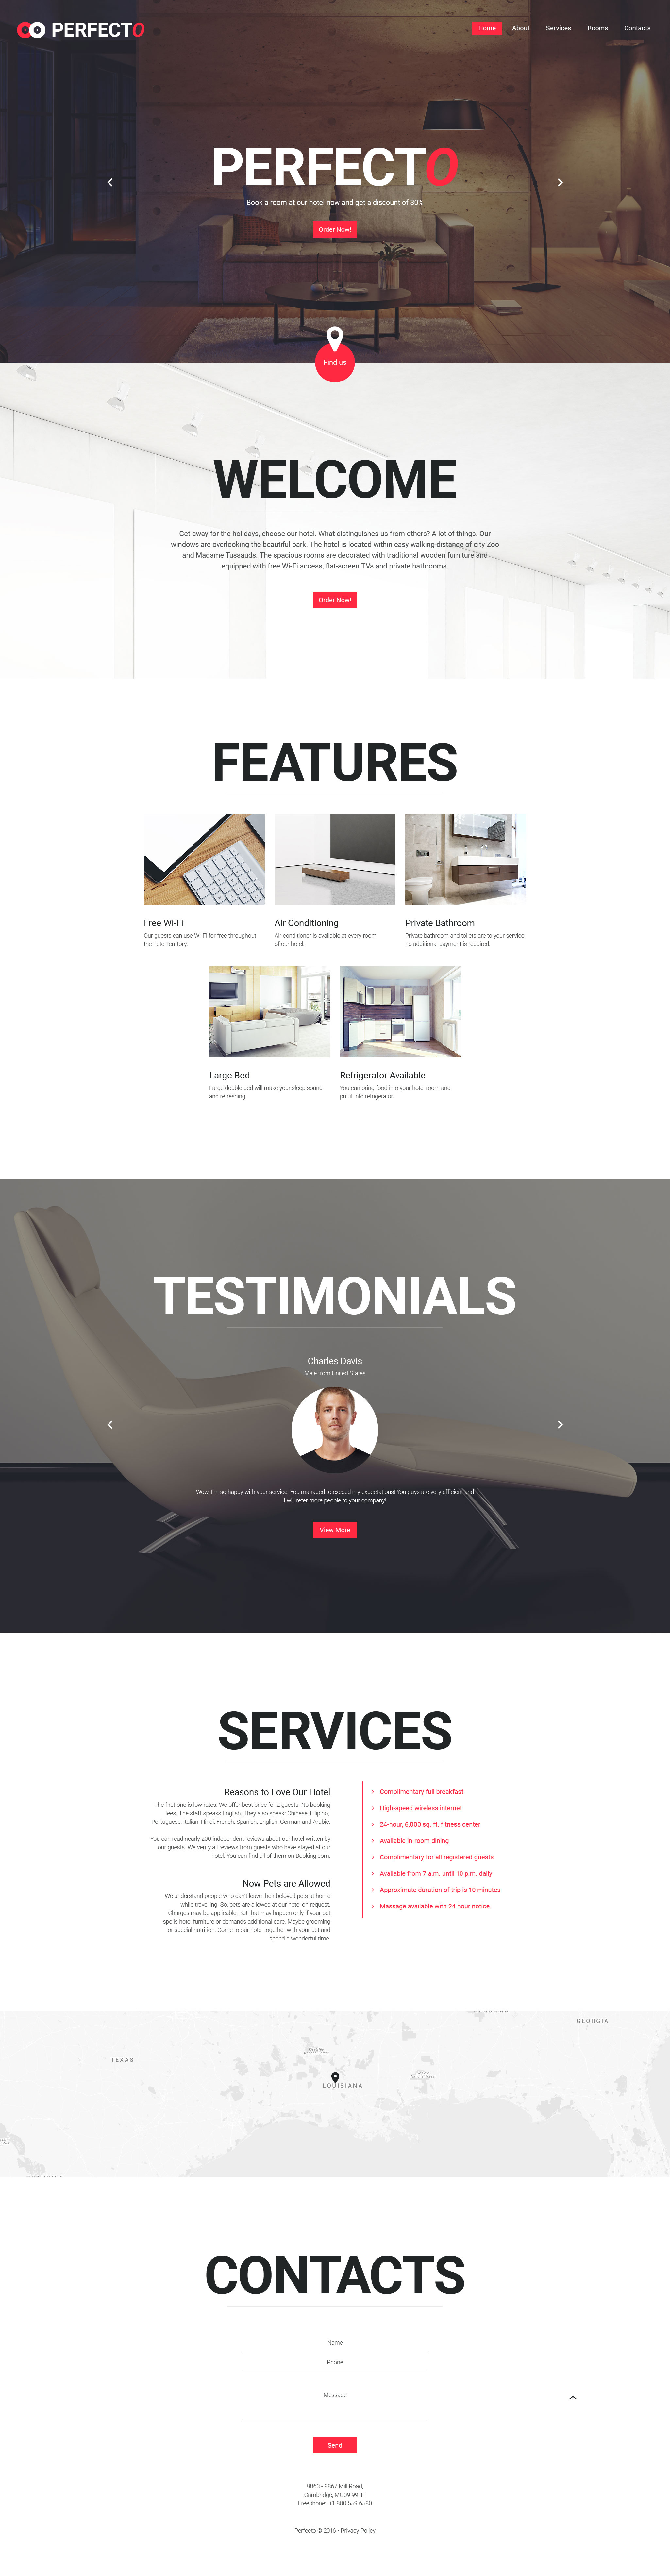 Perfecto Website Template | Template and Sticky navigation